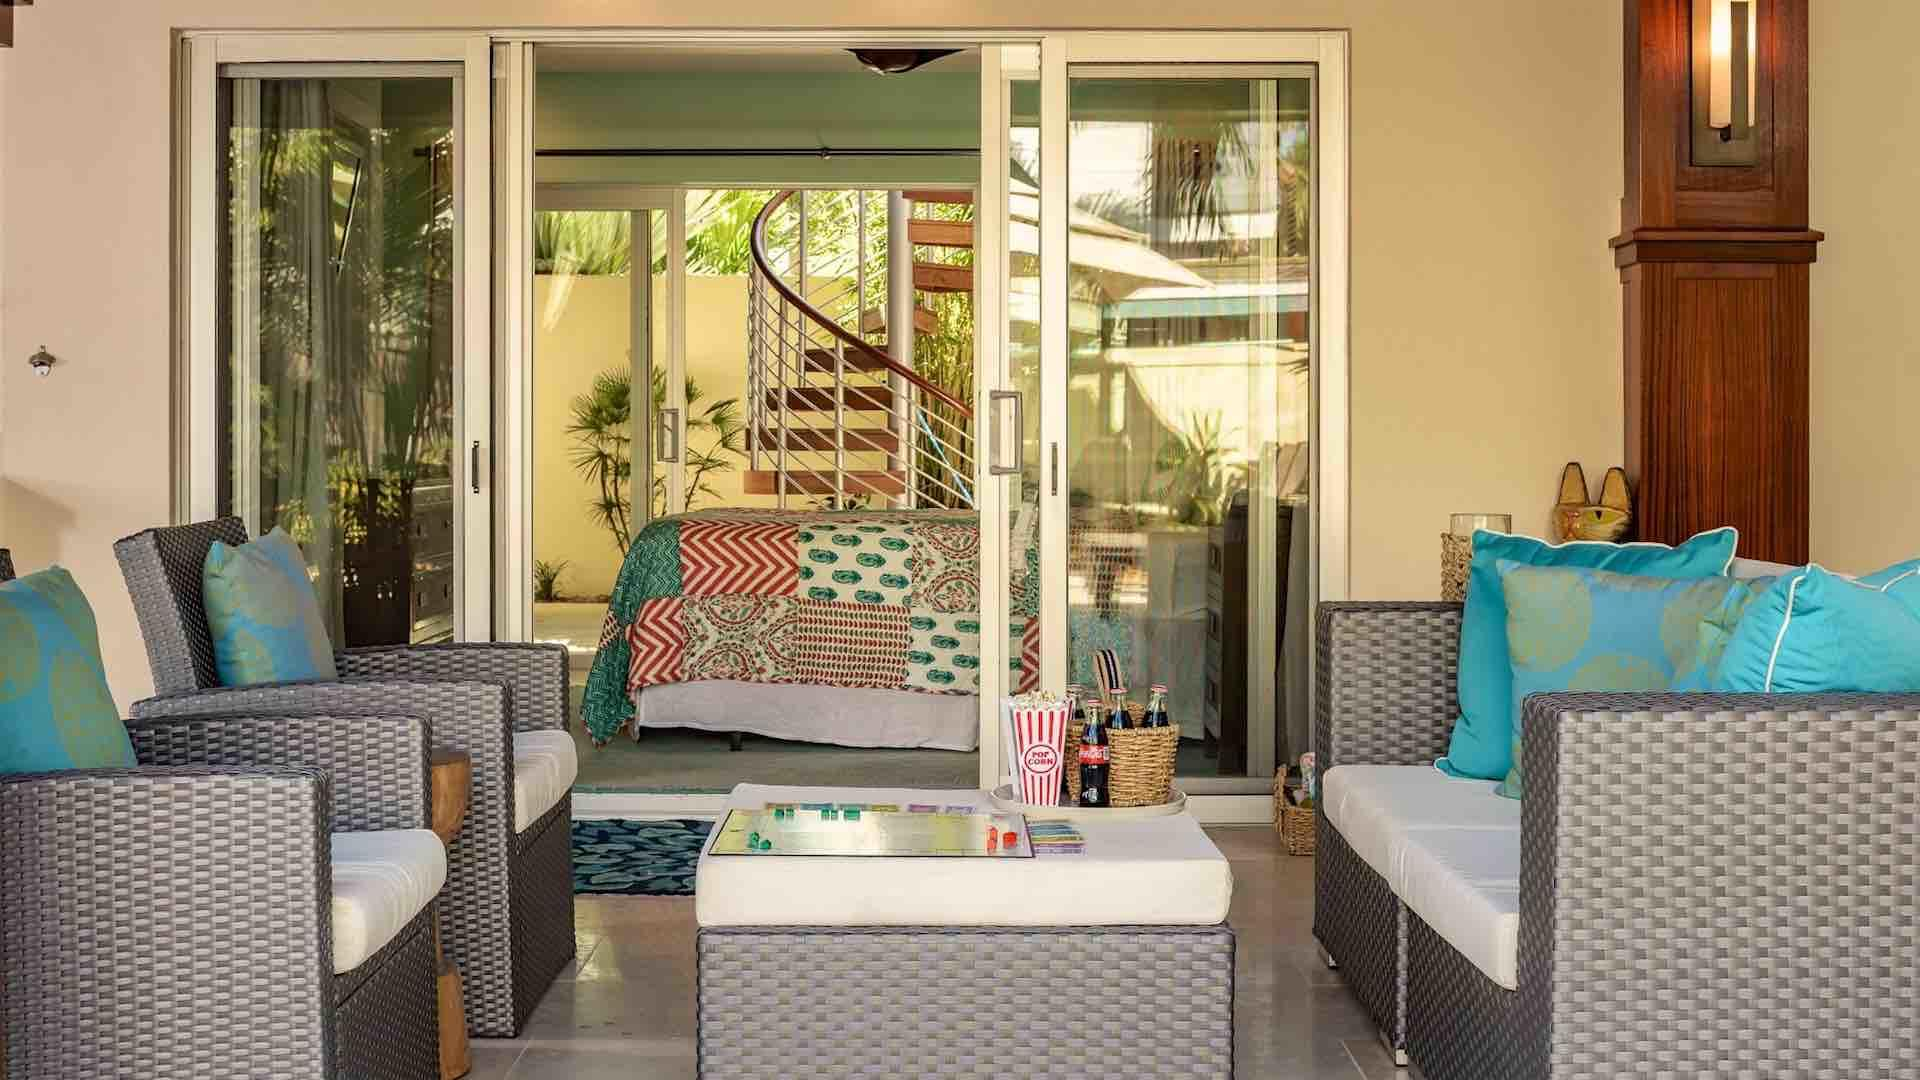 Start your day with morning coffee on the lanai while you plan your group's daily outing...